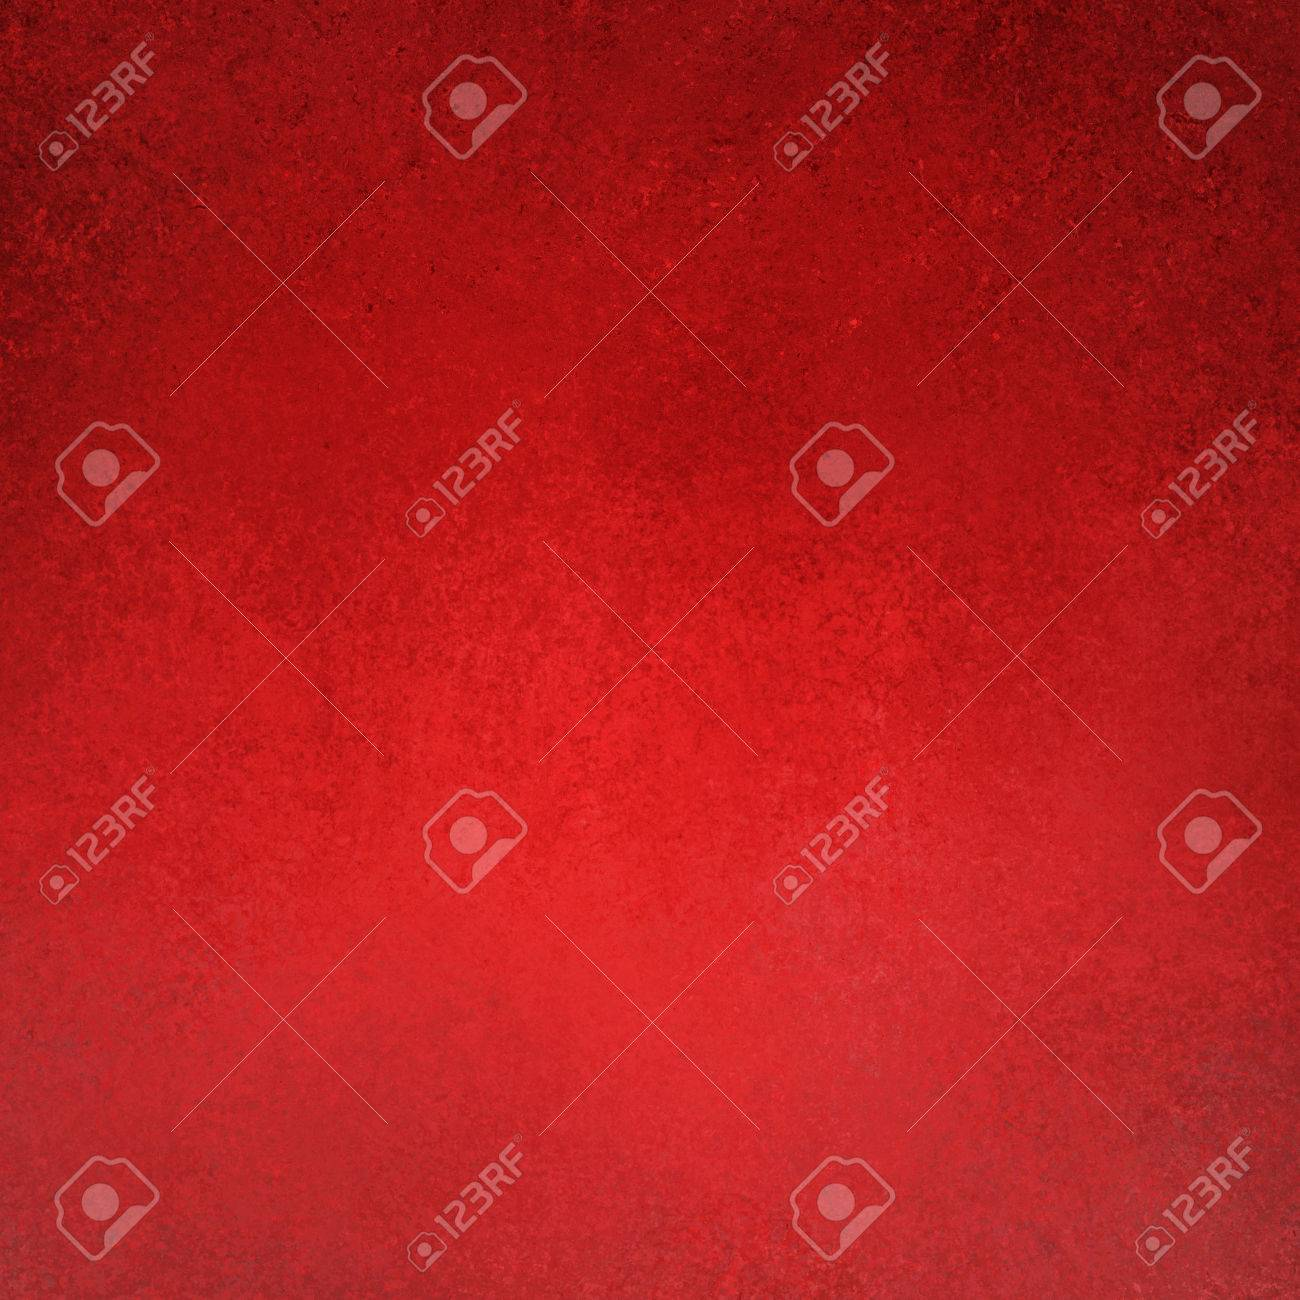 Christmas red background texture - 74726736